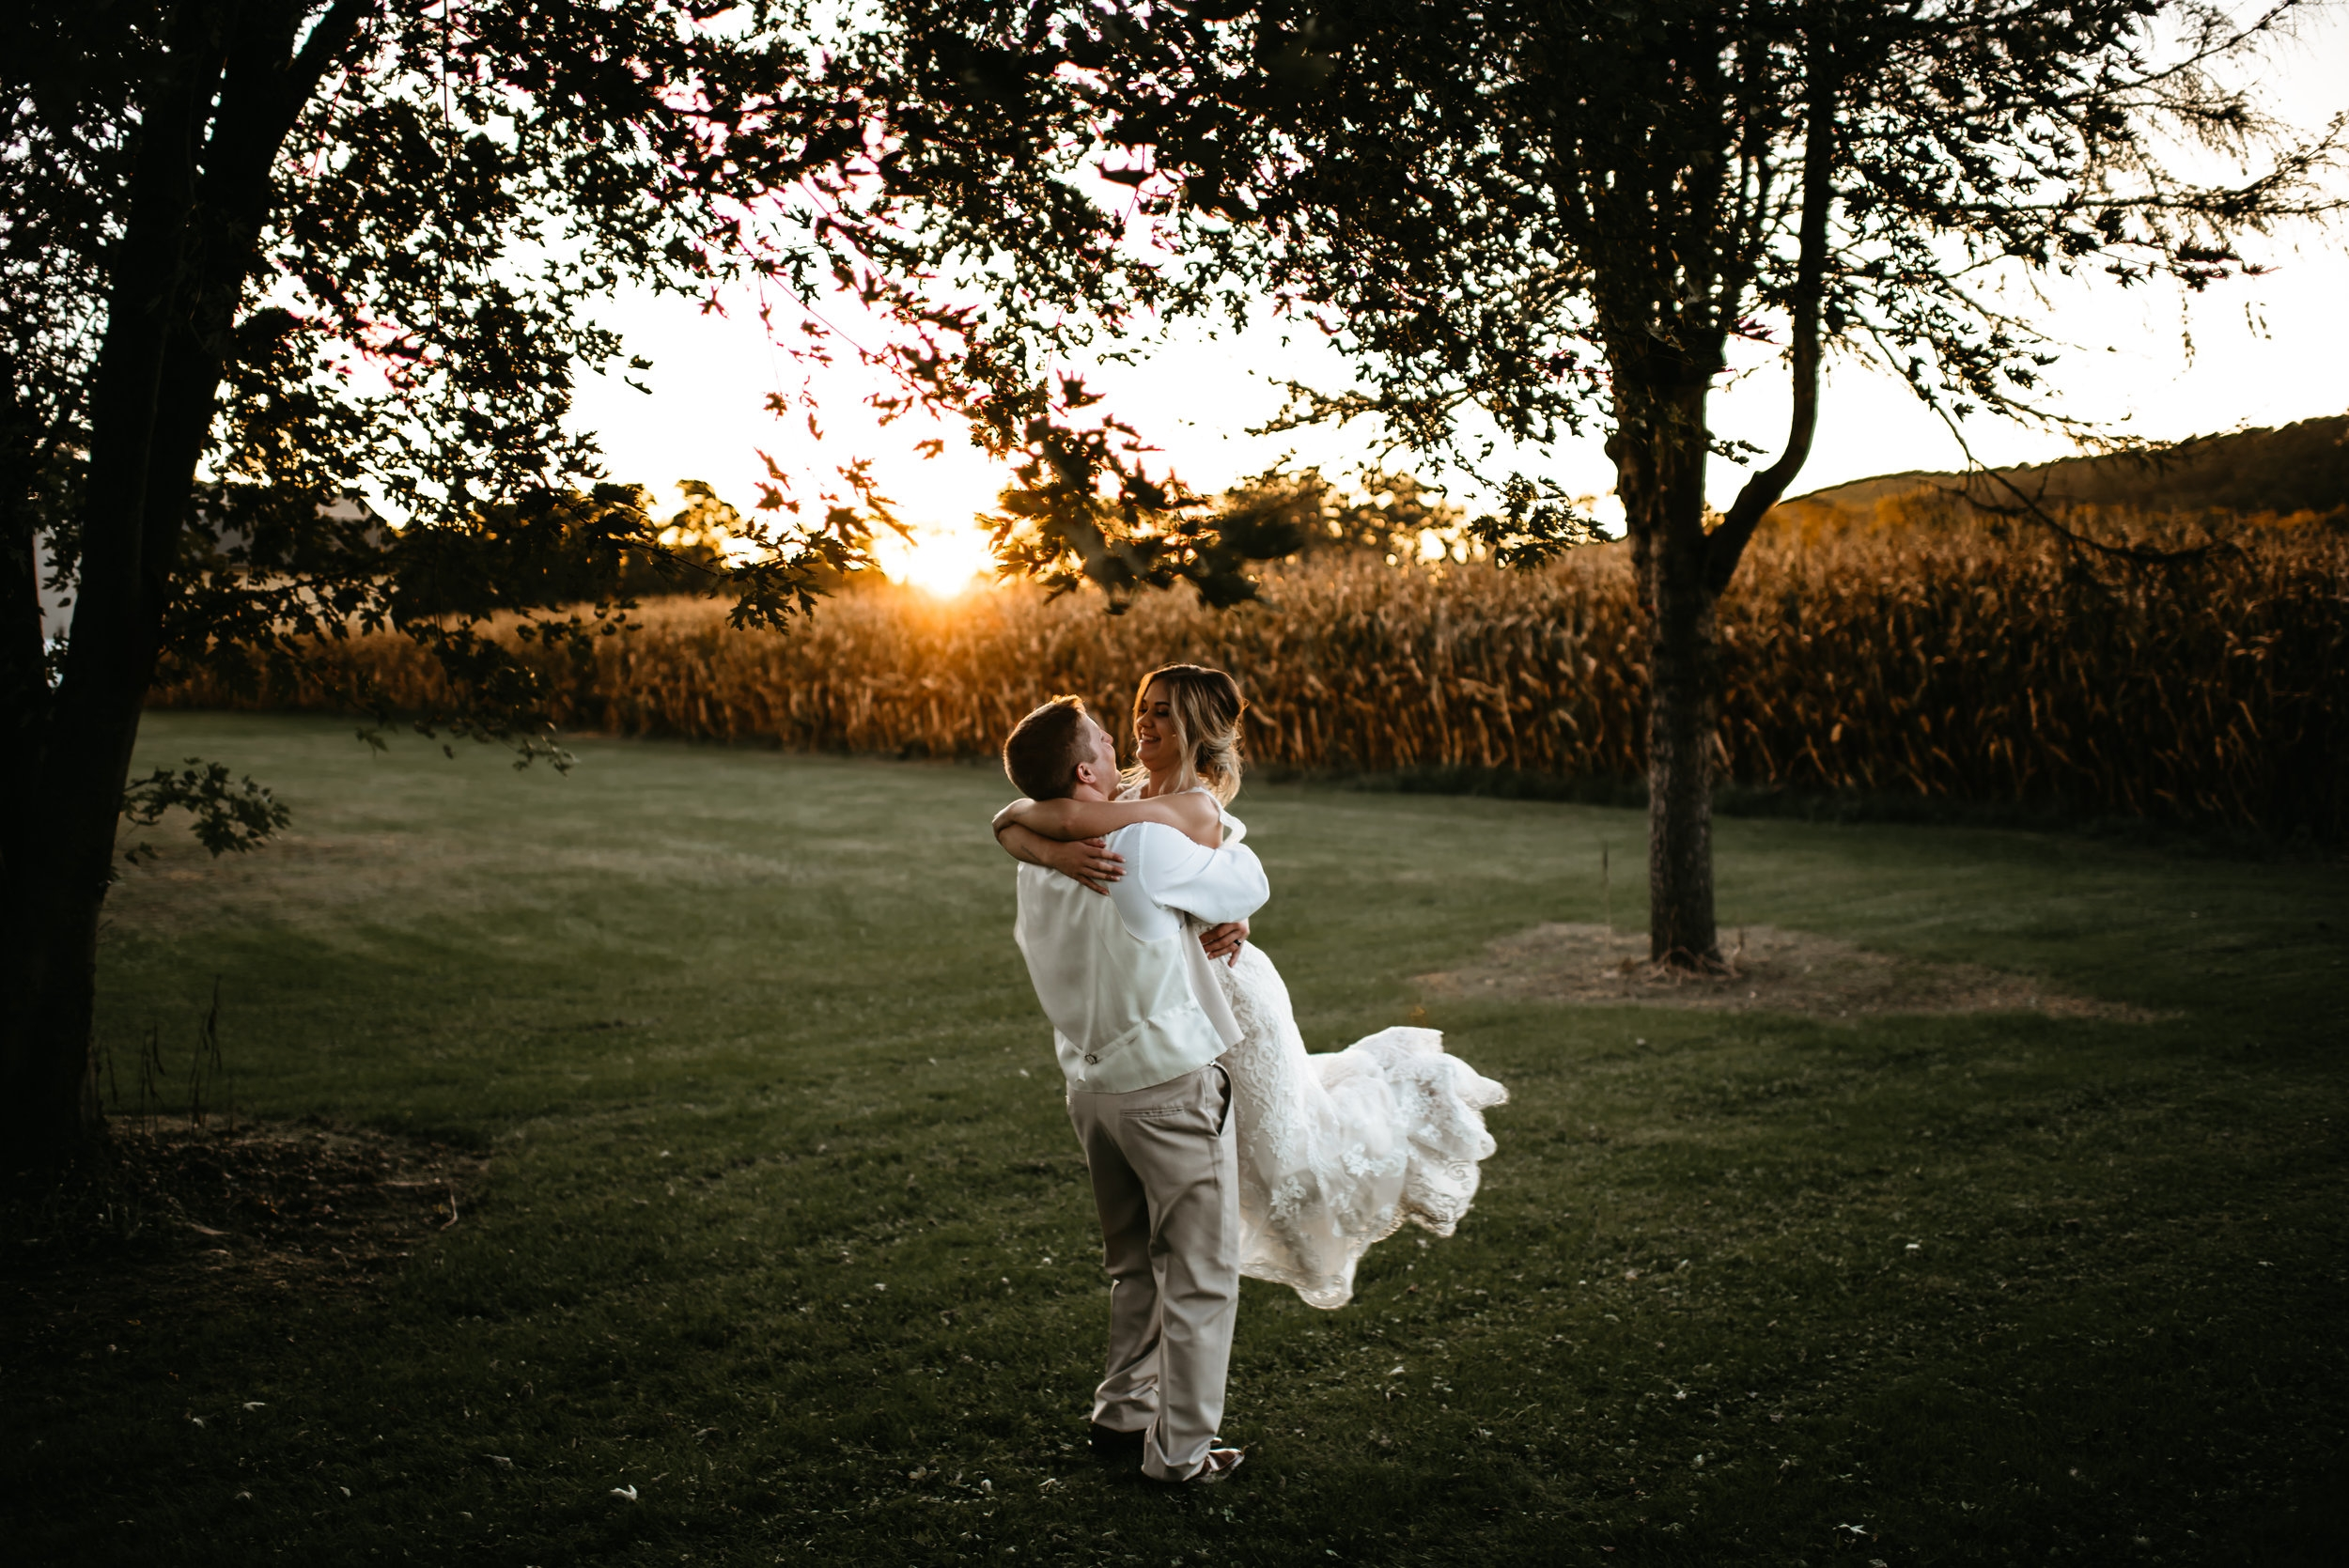 Ashley & Zeb - The Red Barn 1900, Lock Haven, PA